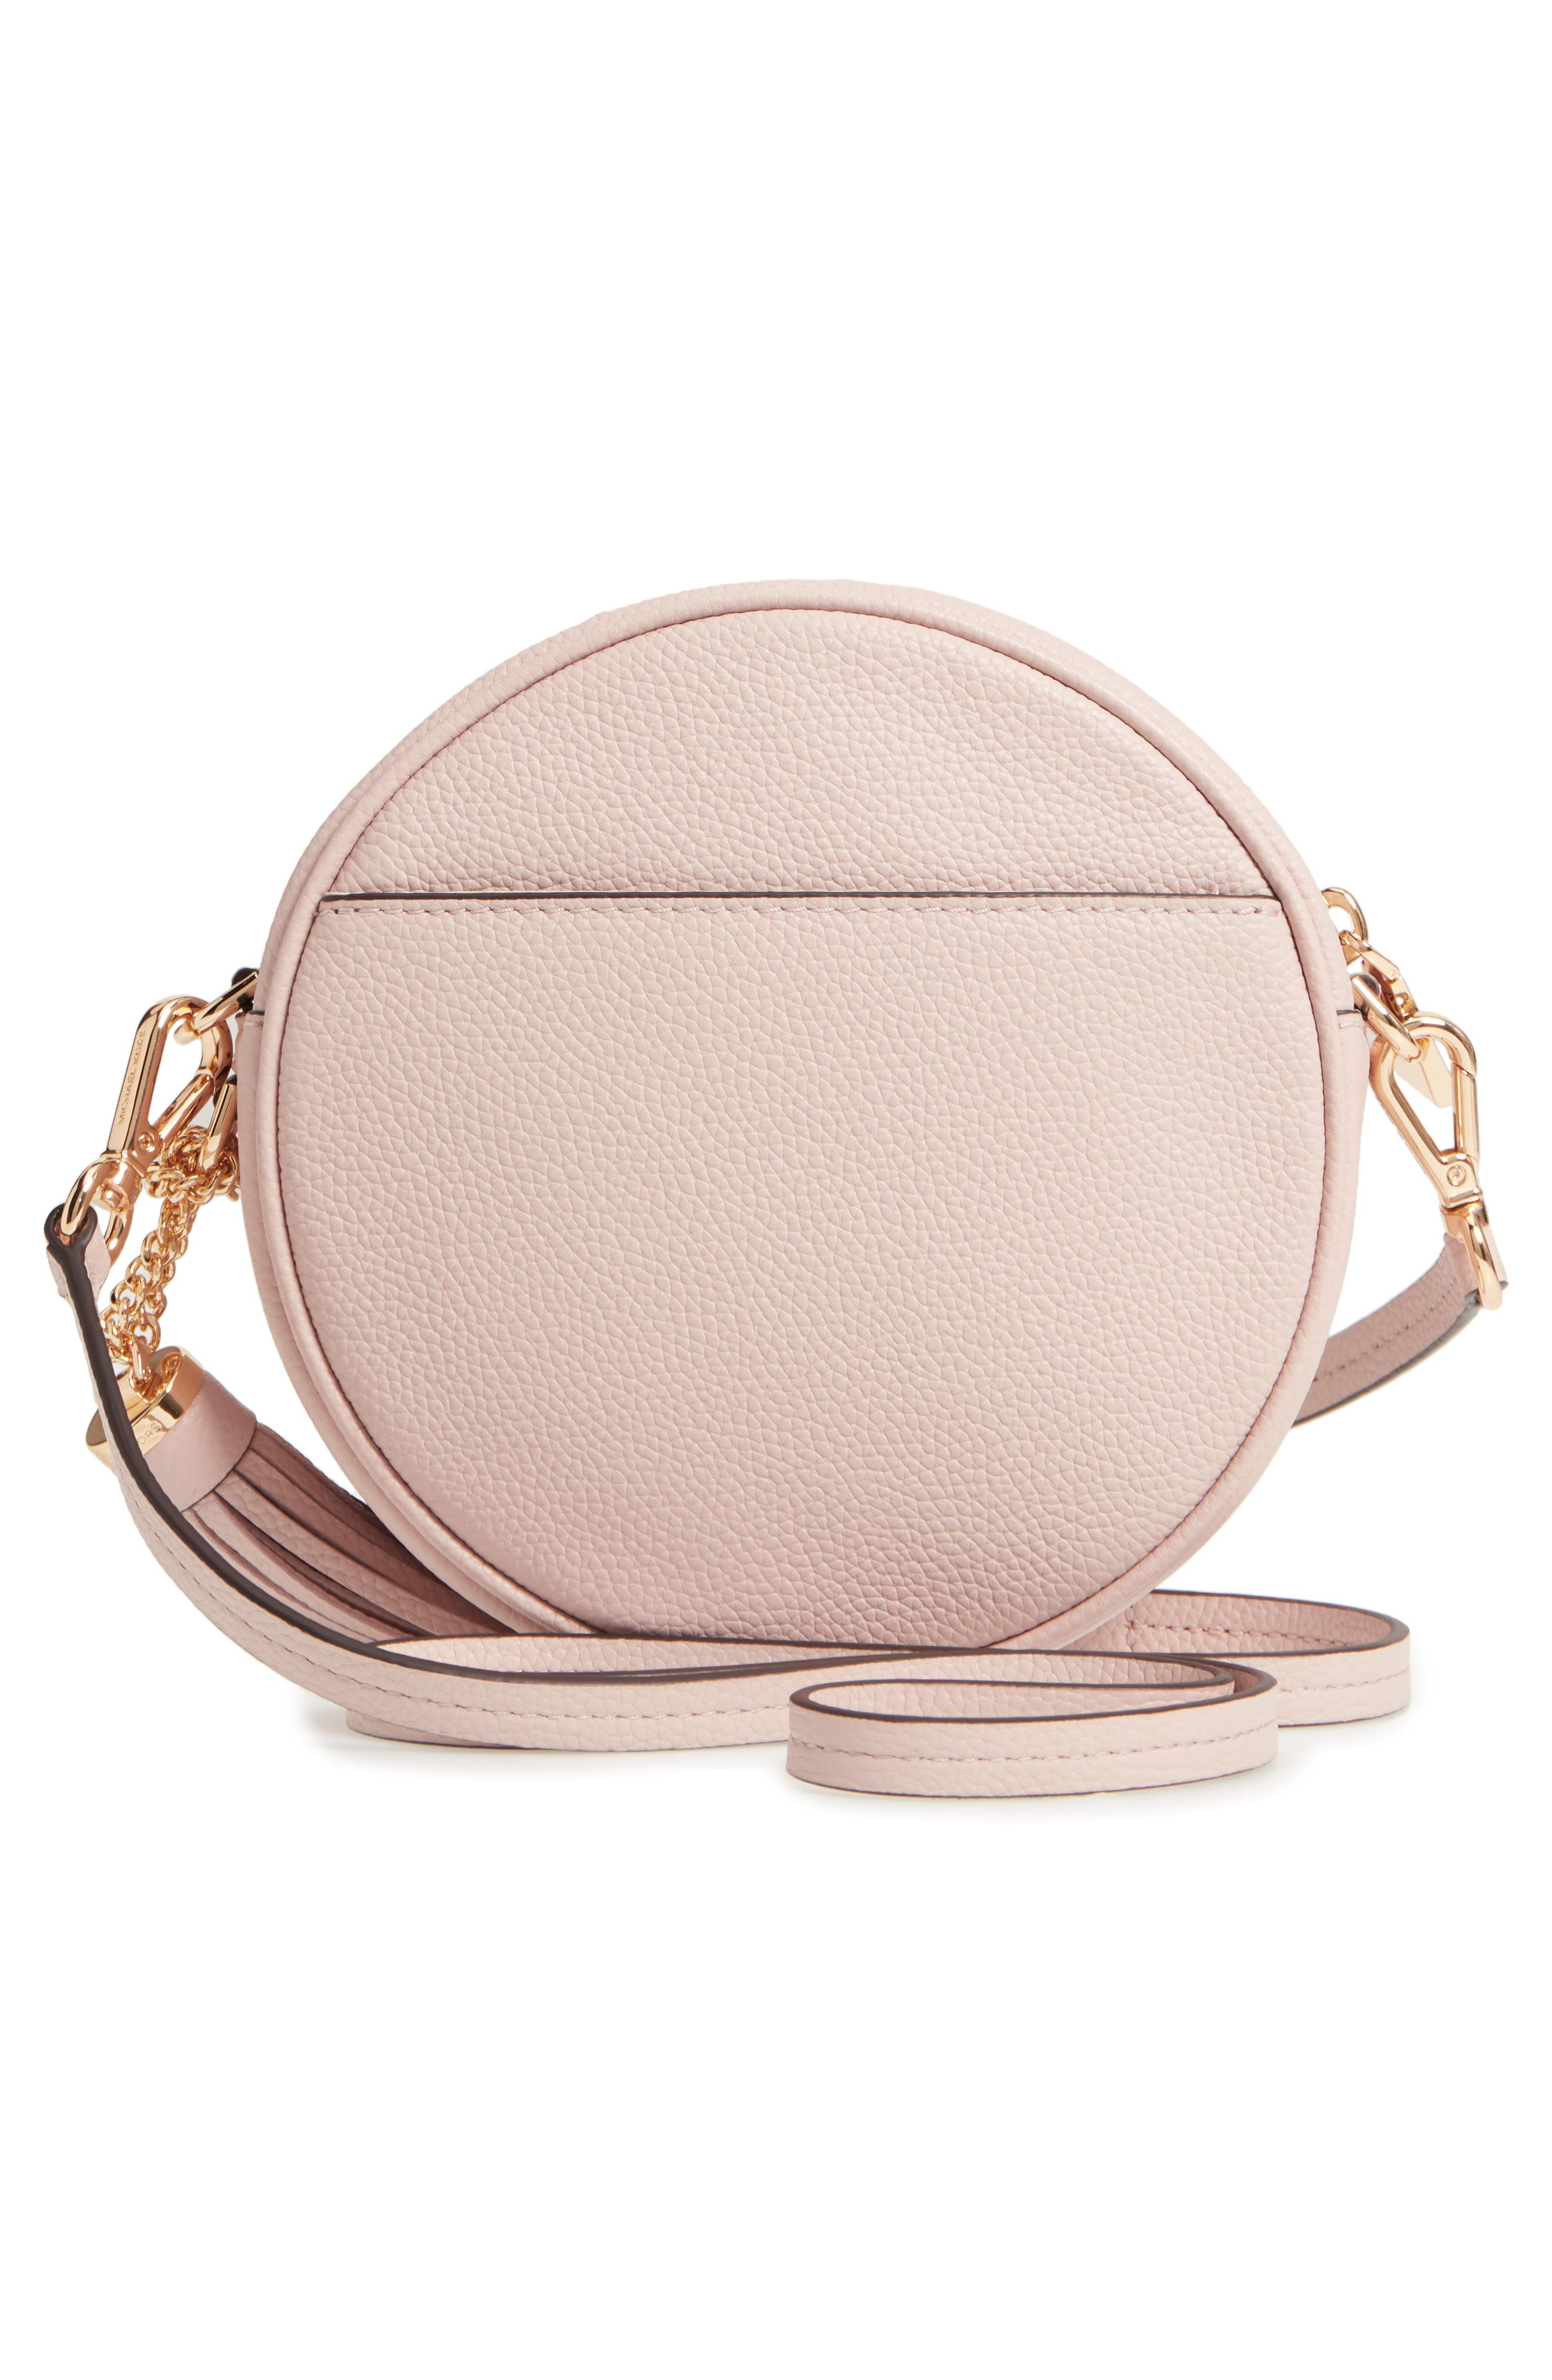 Medium Leather Canteen Bag,                             Alternate thumbnail 3, color,                             Soft Pink